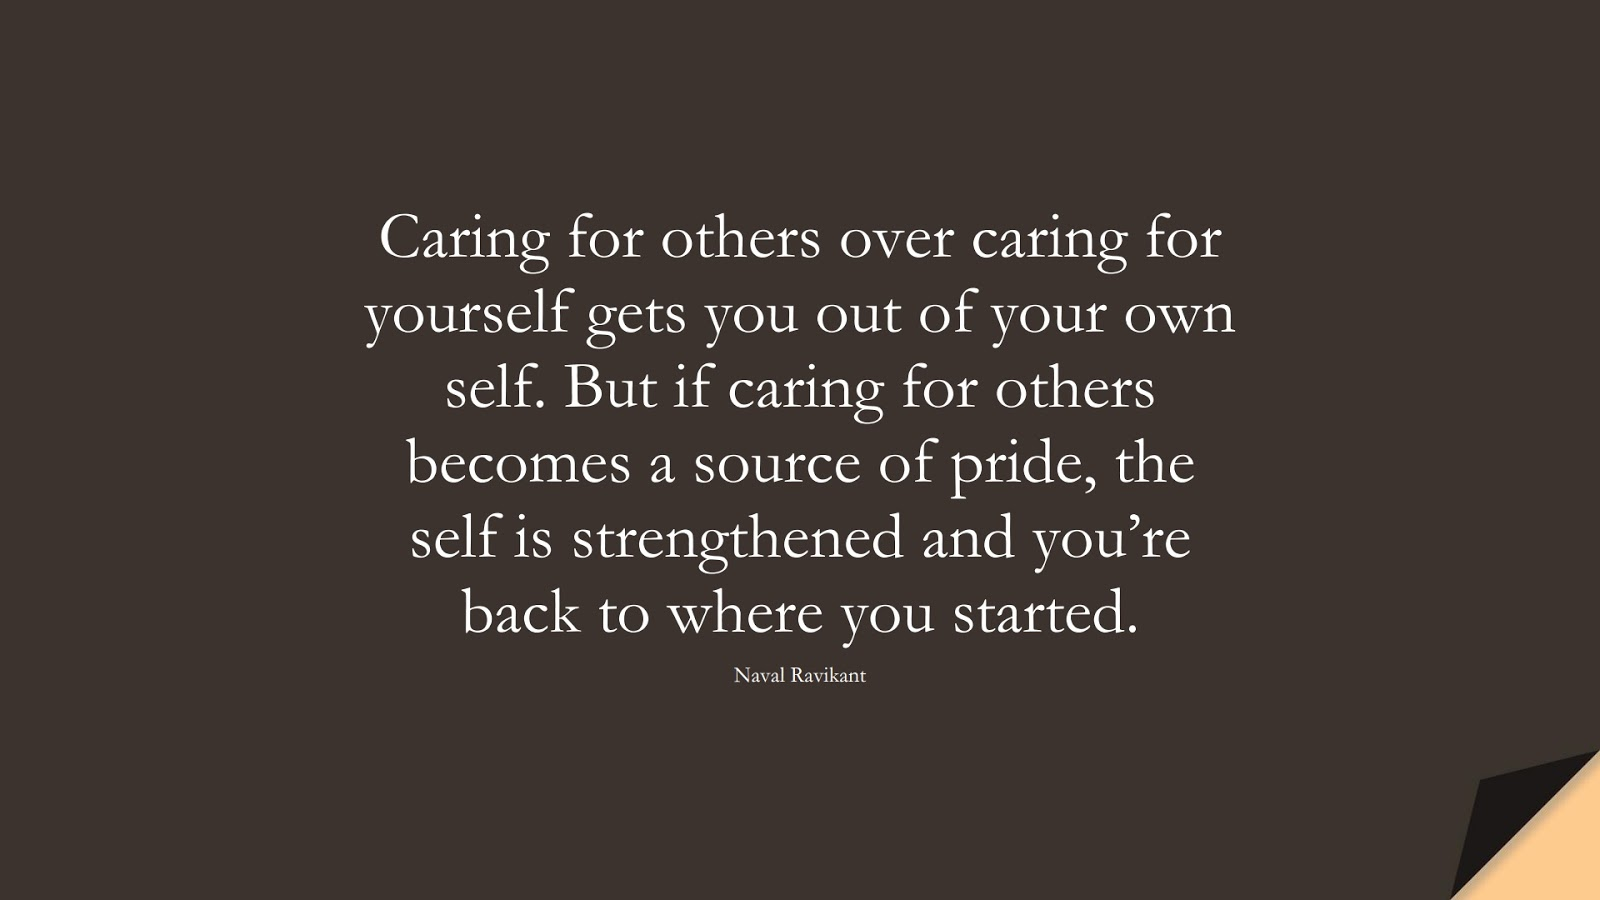 Caring for others over caring for yourself gets you out of your own self. But if caring for others becomes a source of pride, the self is strengthened and you're back to where you started. (Naval Ravikant);  #LoveYourselfQuotes